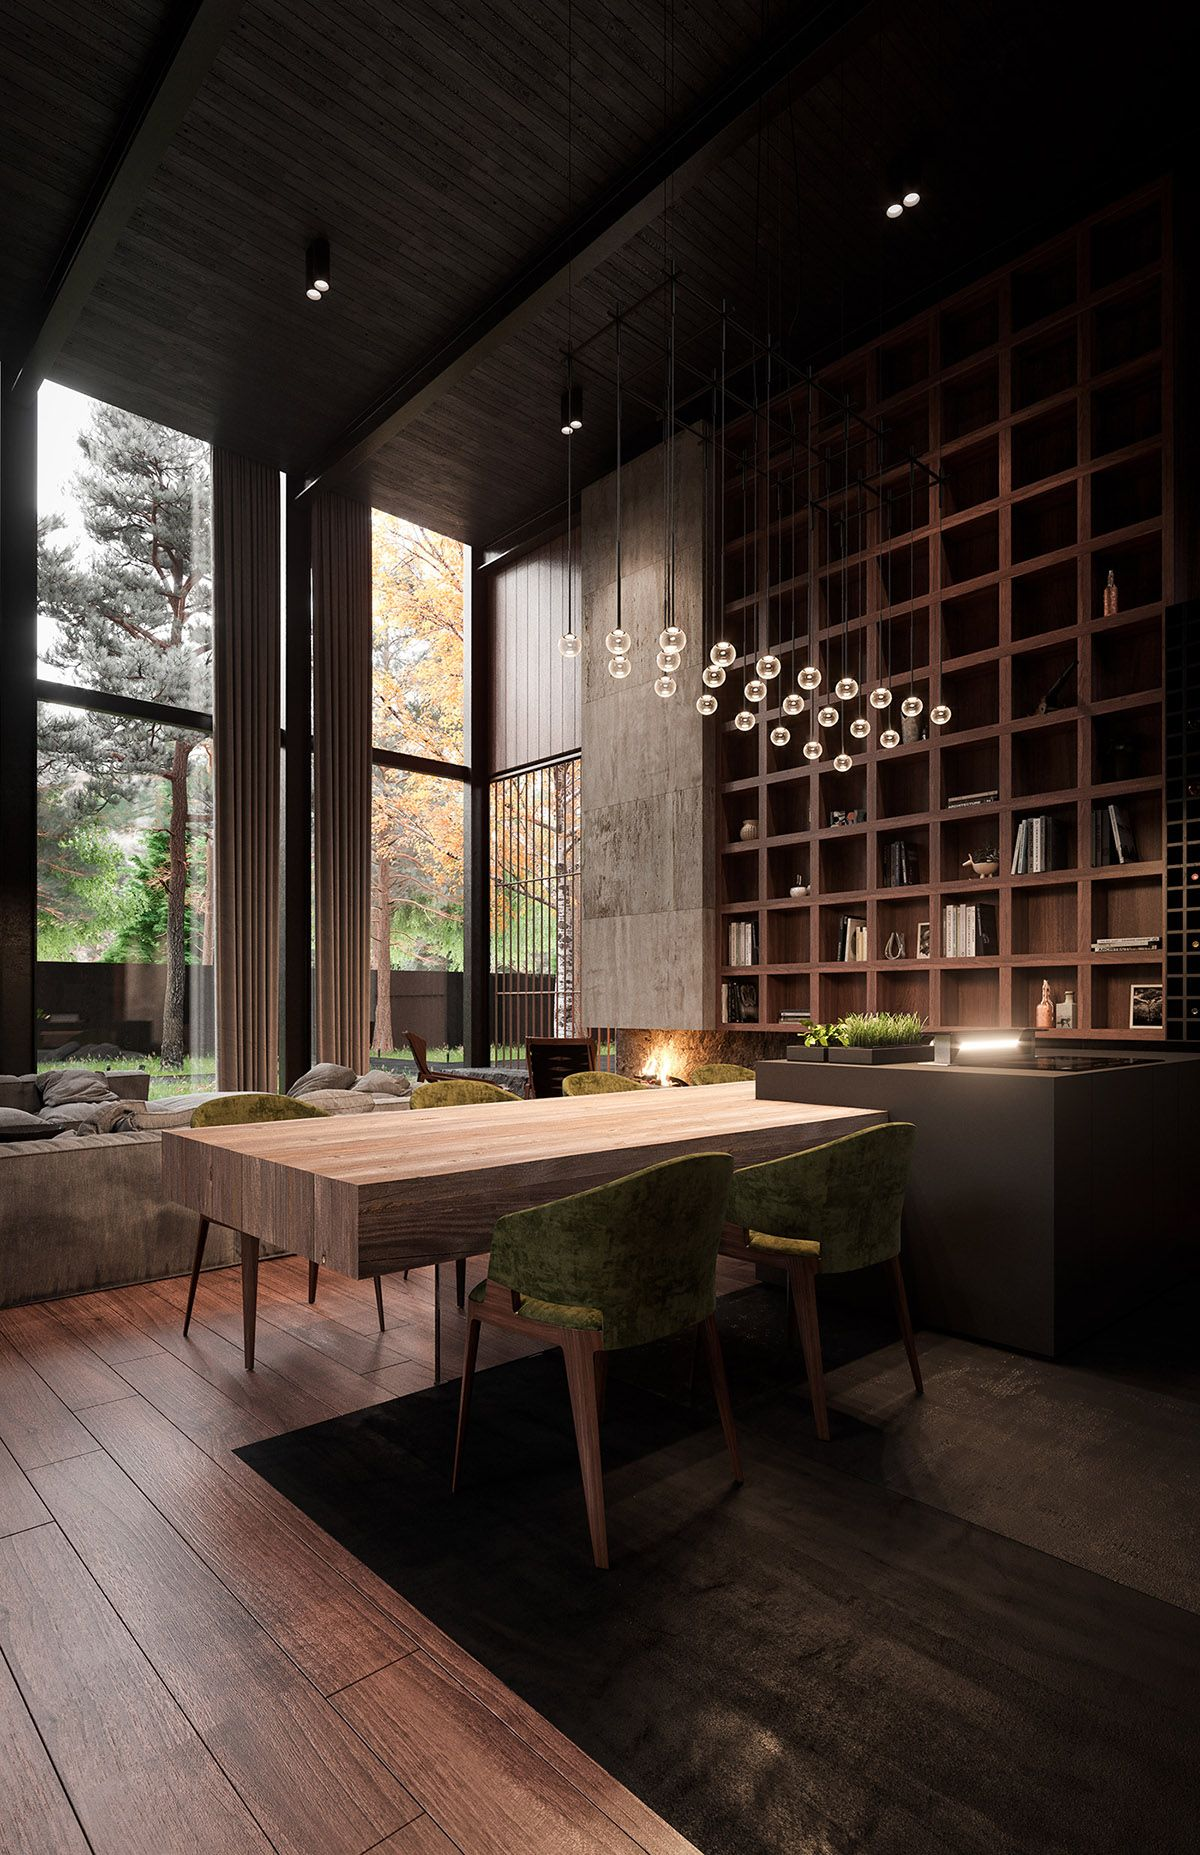 Rich & Exquisite Modern Rustic Home Interior | Rustic home ...